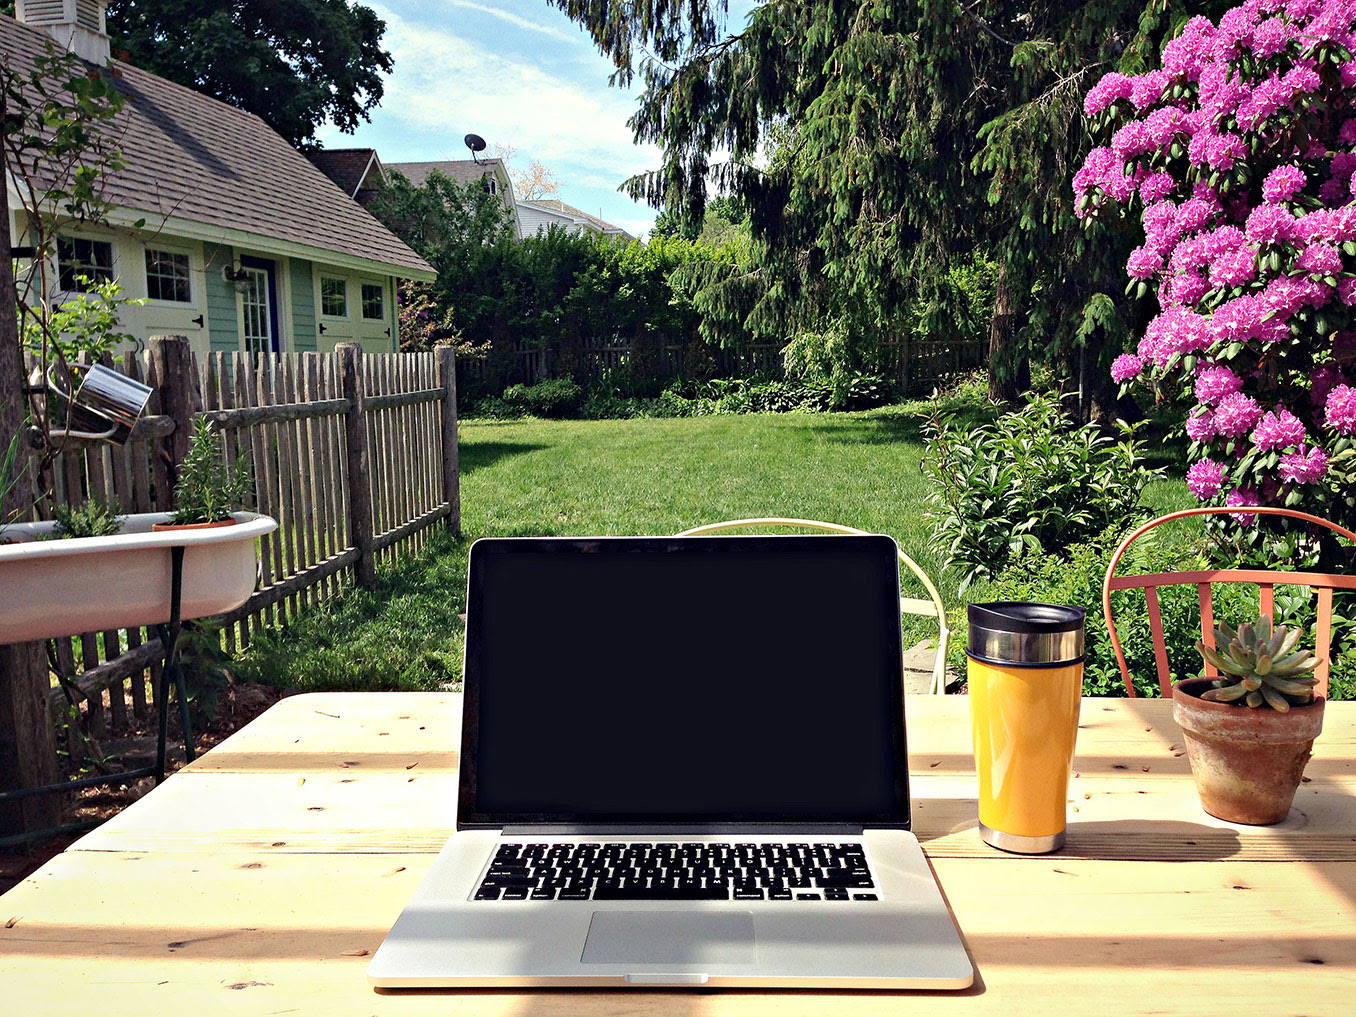 A laptop at a desk, set in a beautiful outdoor garden